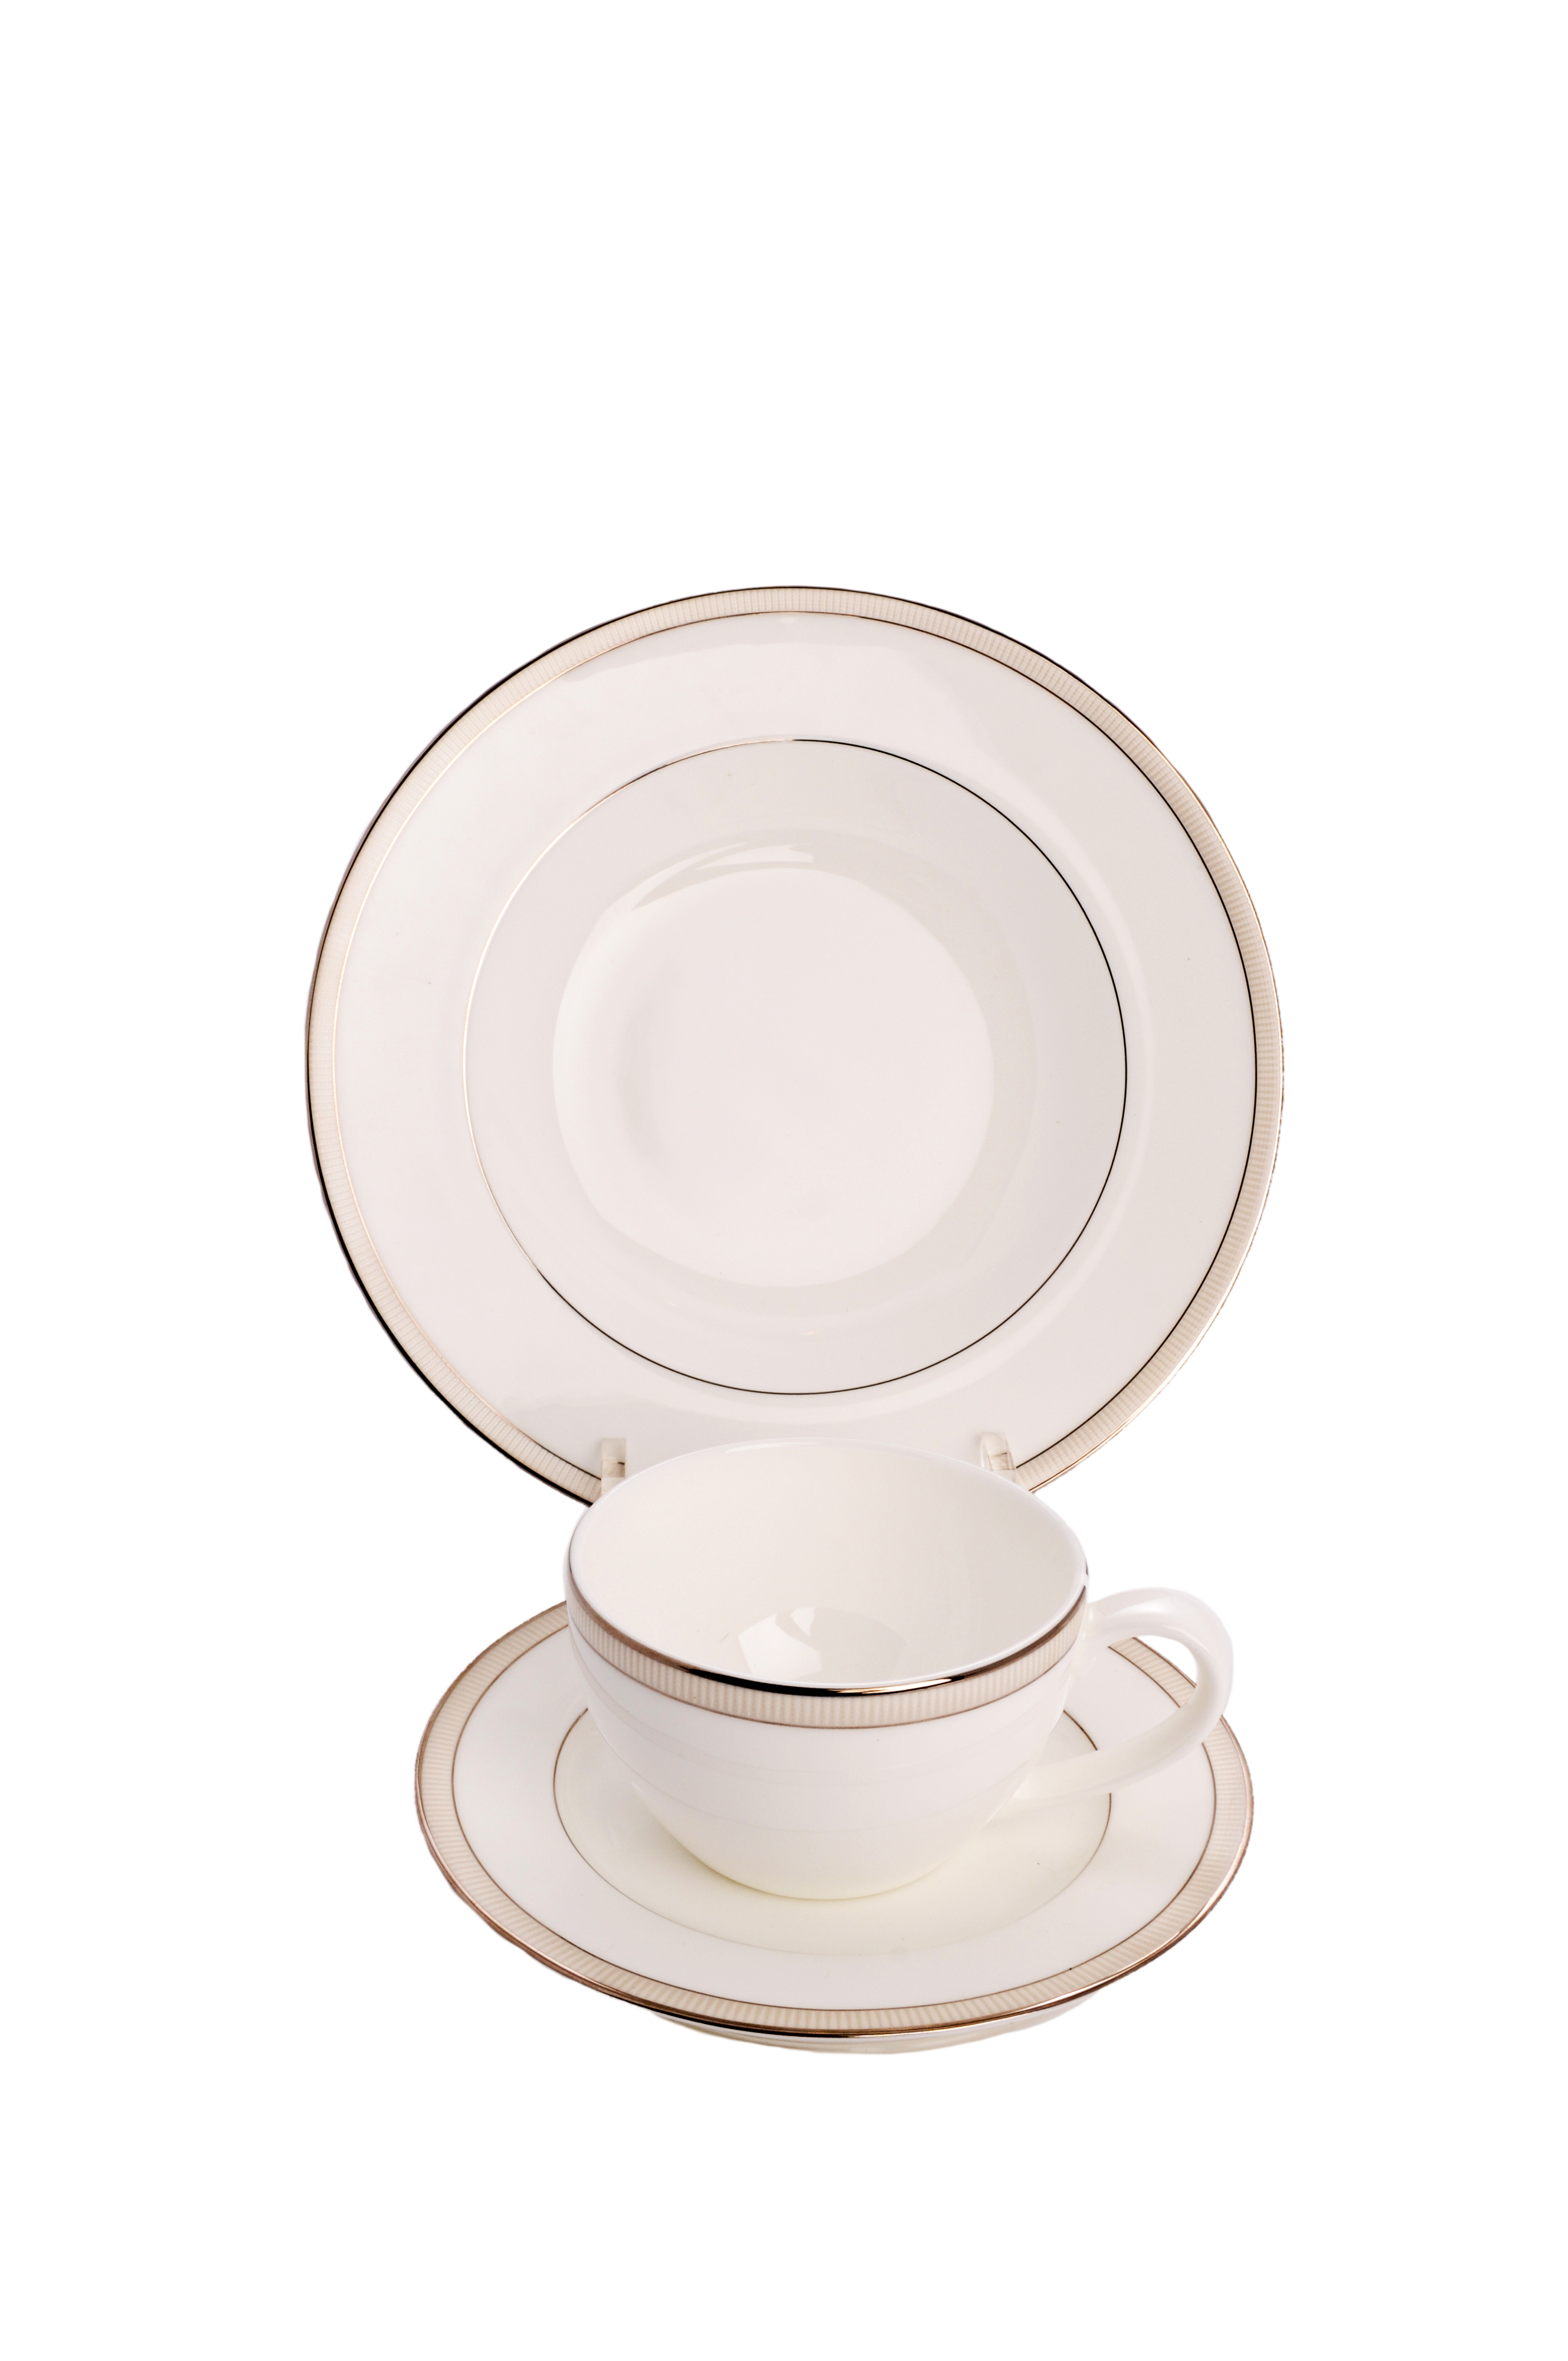 $20.80 each  sc 1 st  THB Products LLC & Clear Acrylic 3 Piece Dinnerware / China / Place Setting Display ...